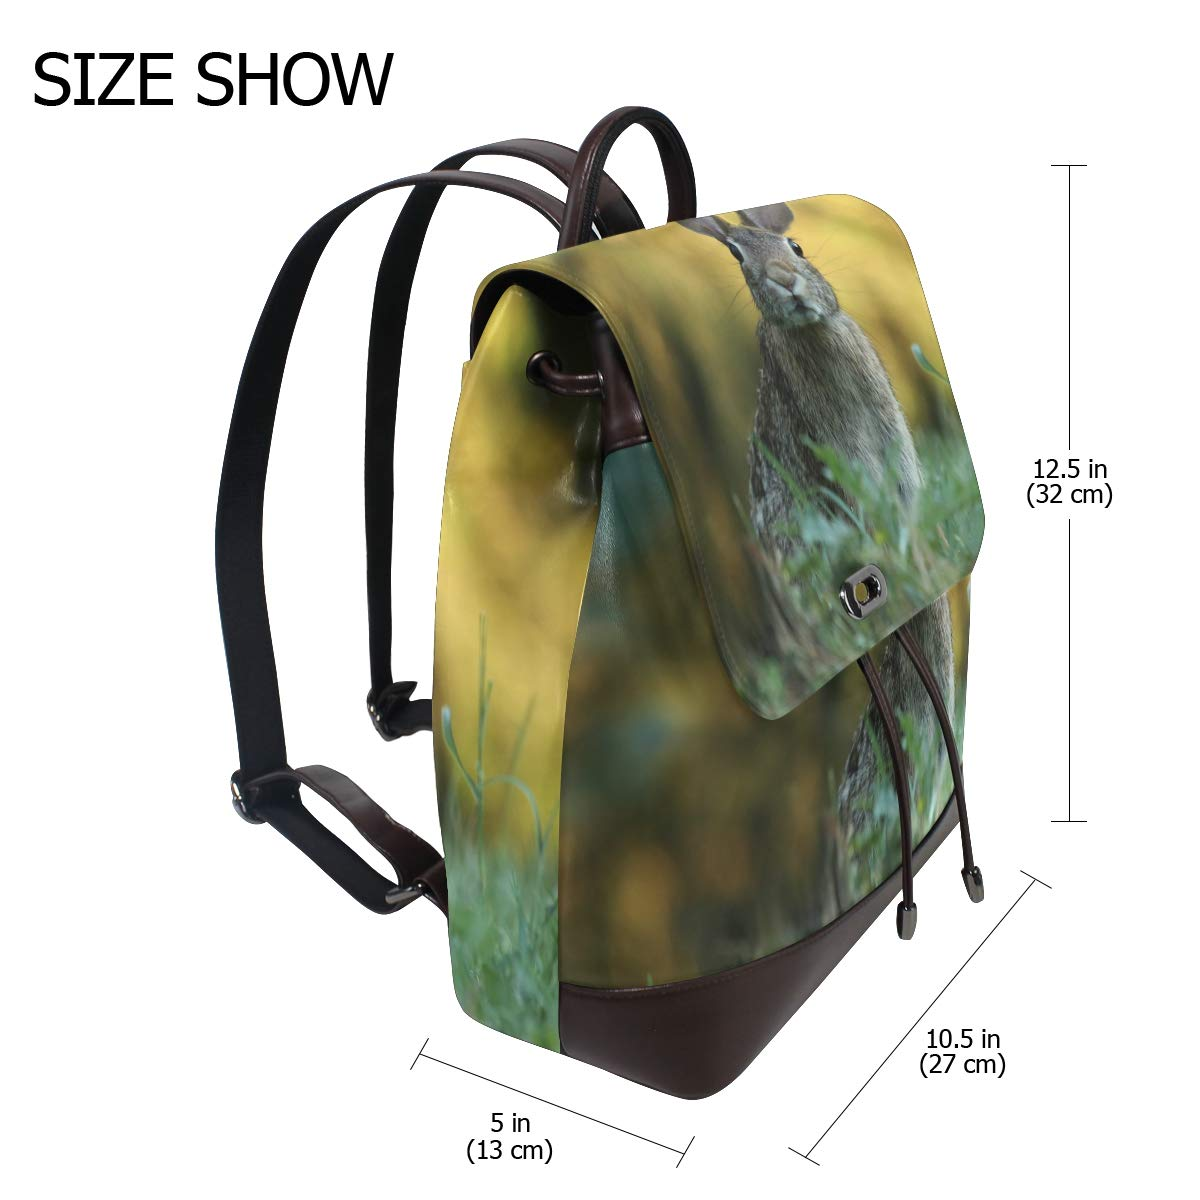 PU Leather Shoulder Bag,Rabbit On Grass Backpack,Portable Travel School Rucksack,Satchel with Top Handle